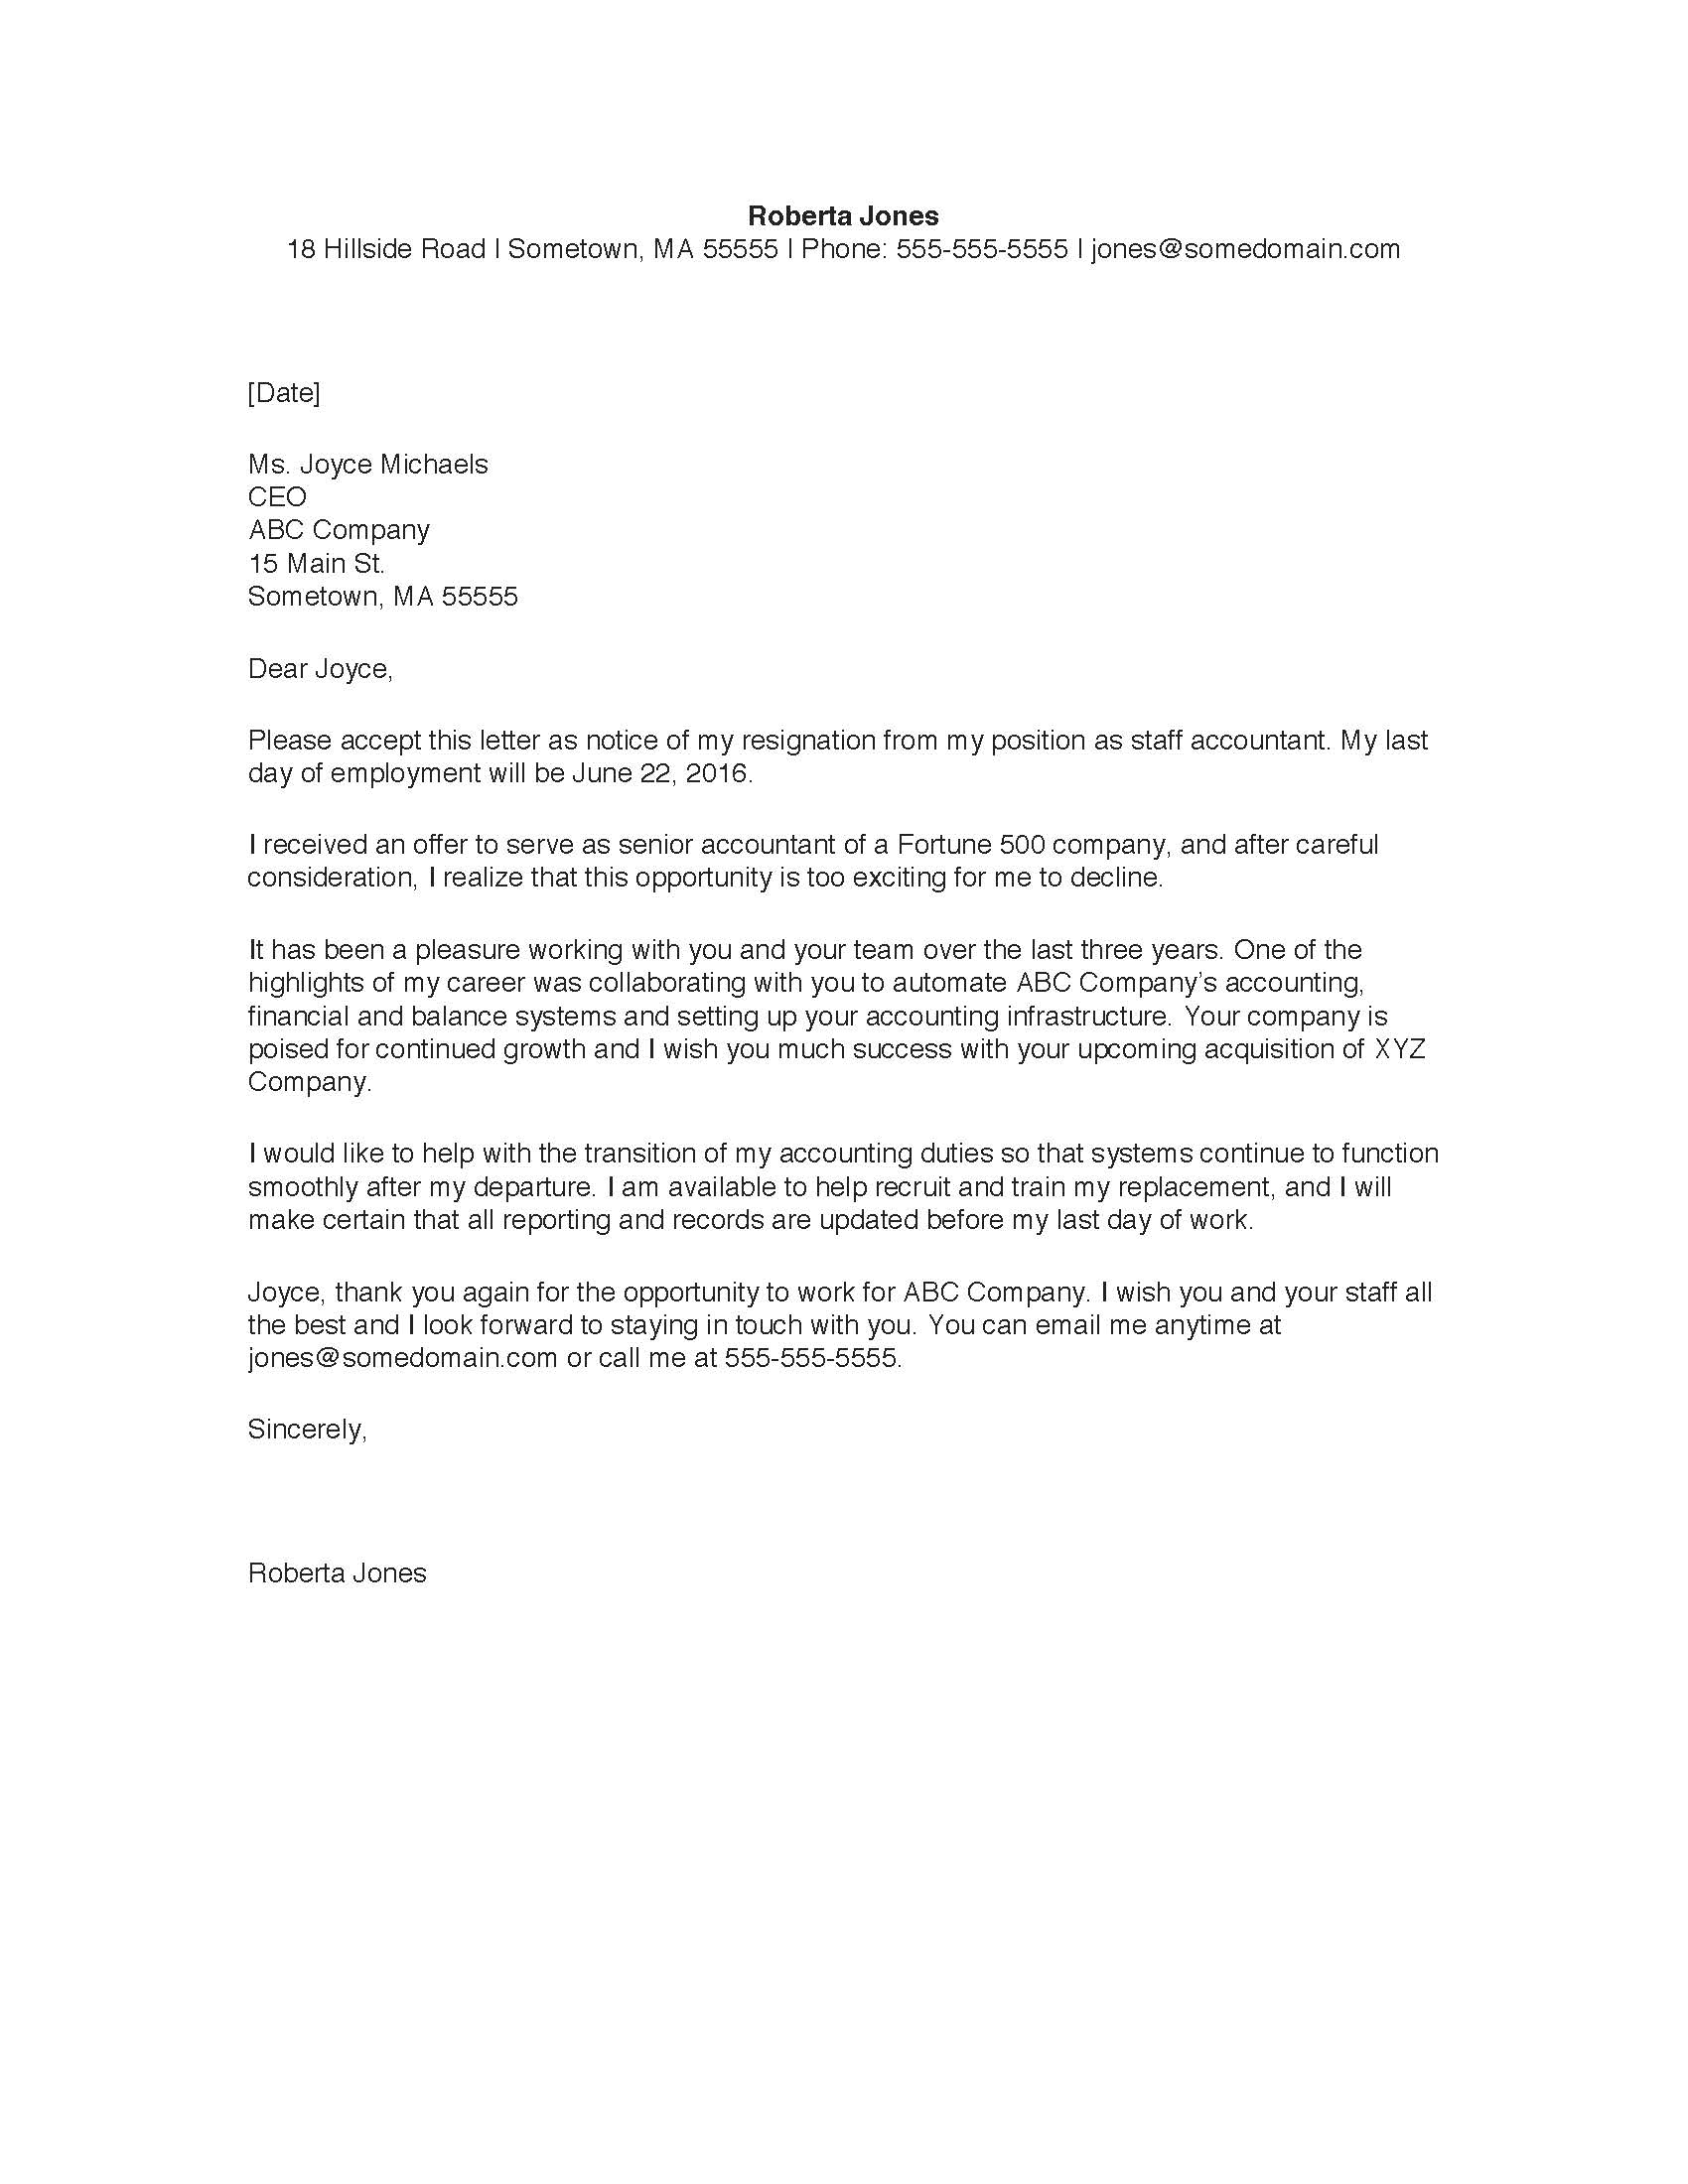 Sample Resignation Letter  Monstercom. Lebenslauf Vorlage Jobboerse. Curriculum Vitae Exemple Catala. Lebenslauf Geburtsdatum. Sample Excuse Letter For Grade 3. Cover Letter For Internship Via Email. Cover Letter For Application Form Example. Letter For Resignation In School. Resume Writing Services Oakville